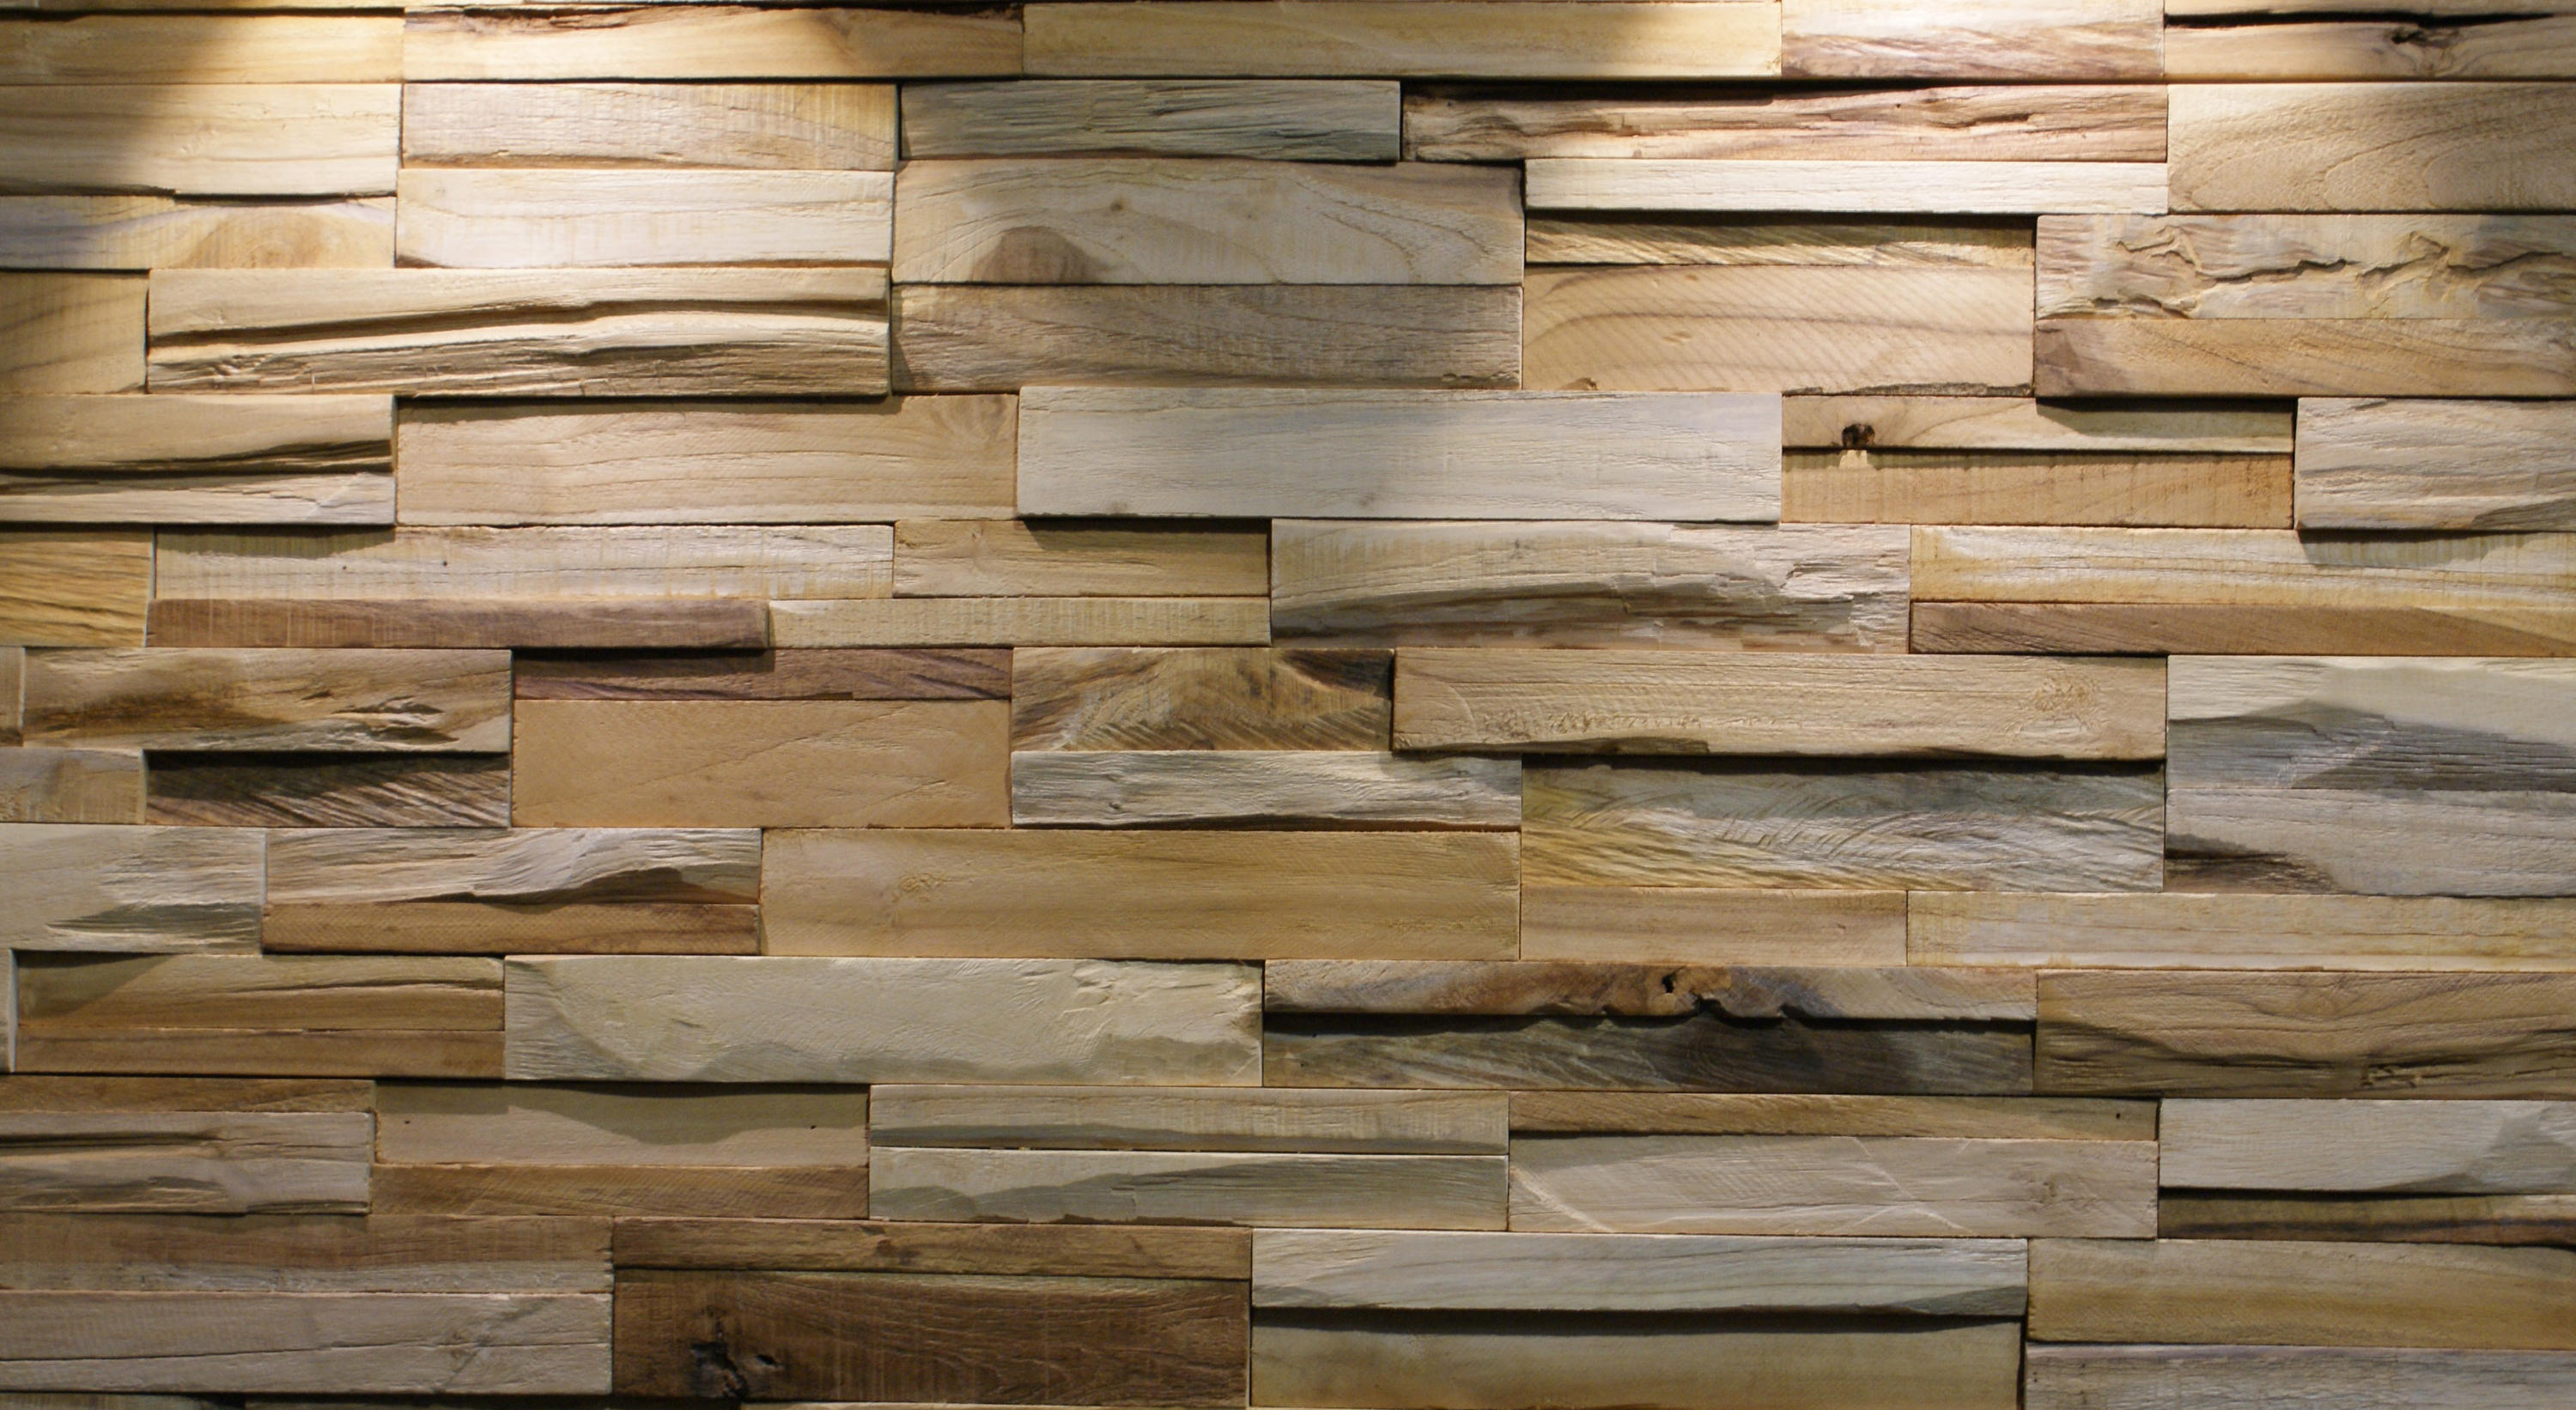 Bumpy Wood Panels From Teak Your Wall Architonic